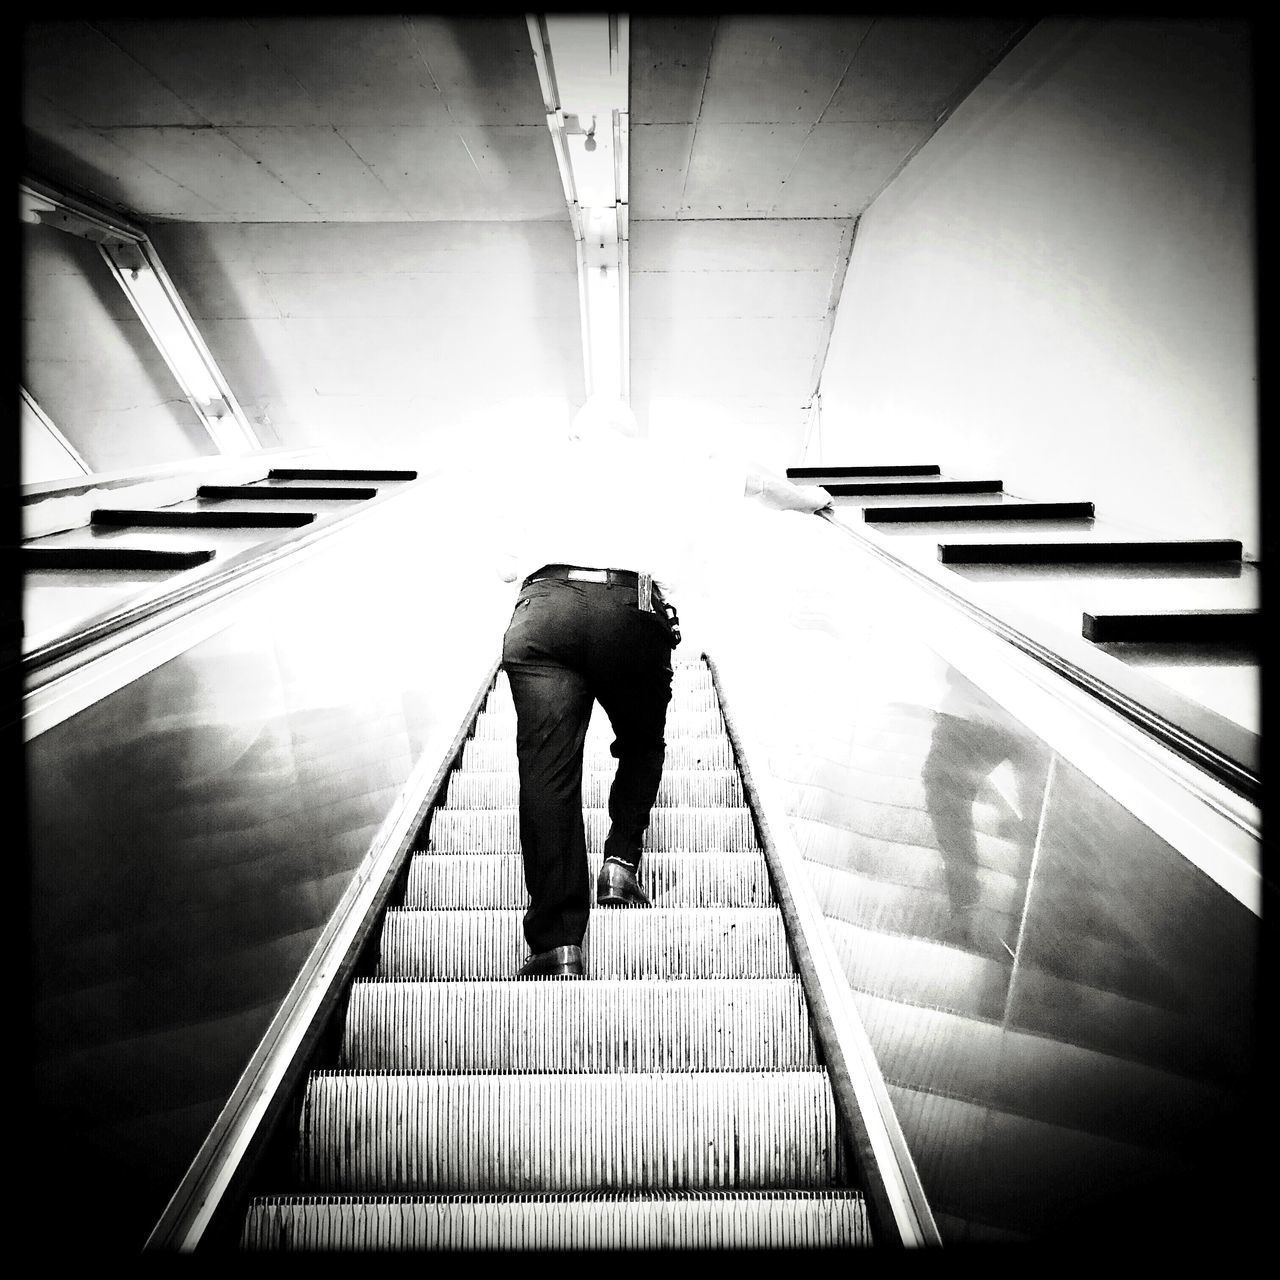 architecture, staircase, steps and staircases, one person, railing, real people, full length, indoors, built structure, lifestyles, escalator, the way forward, direction, rear view, auto post production filter, moving up, transportation, men, transfer print, modern, moving walkway